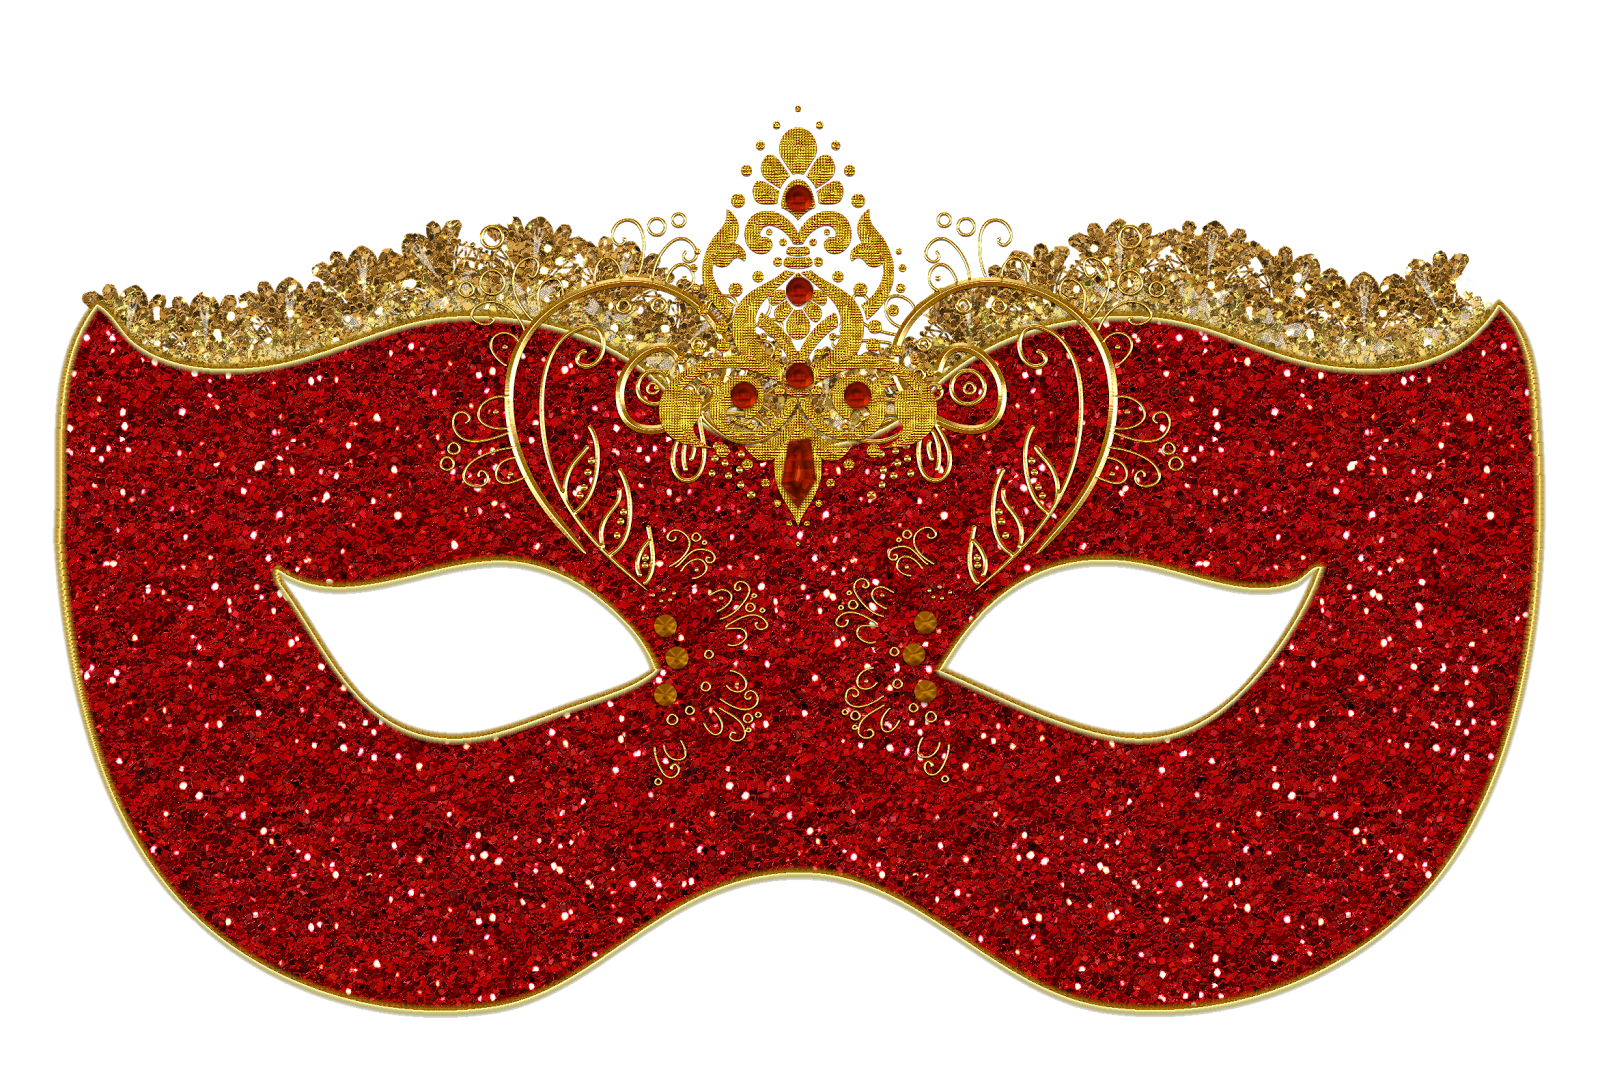 Diamonds and pearls masquerade ball mask png. Hd transparent images invitation